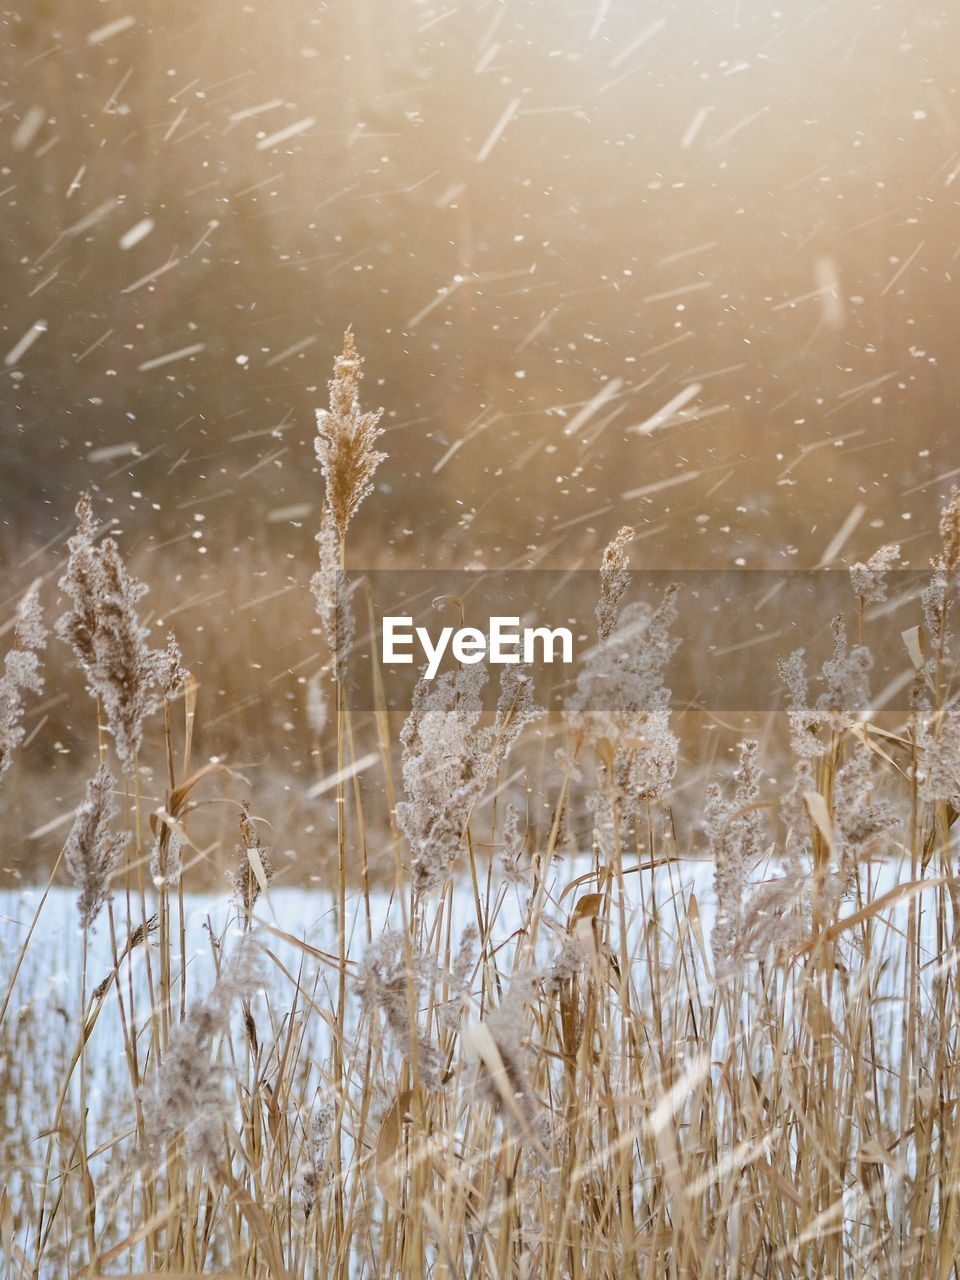 plant, water, tranquility, no people, lake, nature, day, winter, cold temperature, beauty in nature, growth, grass, snow, outdoors, dry, motion, close-up, focus on foreground